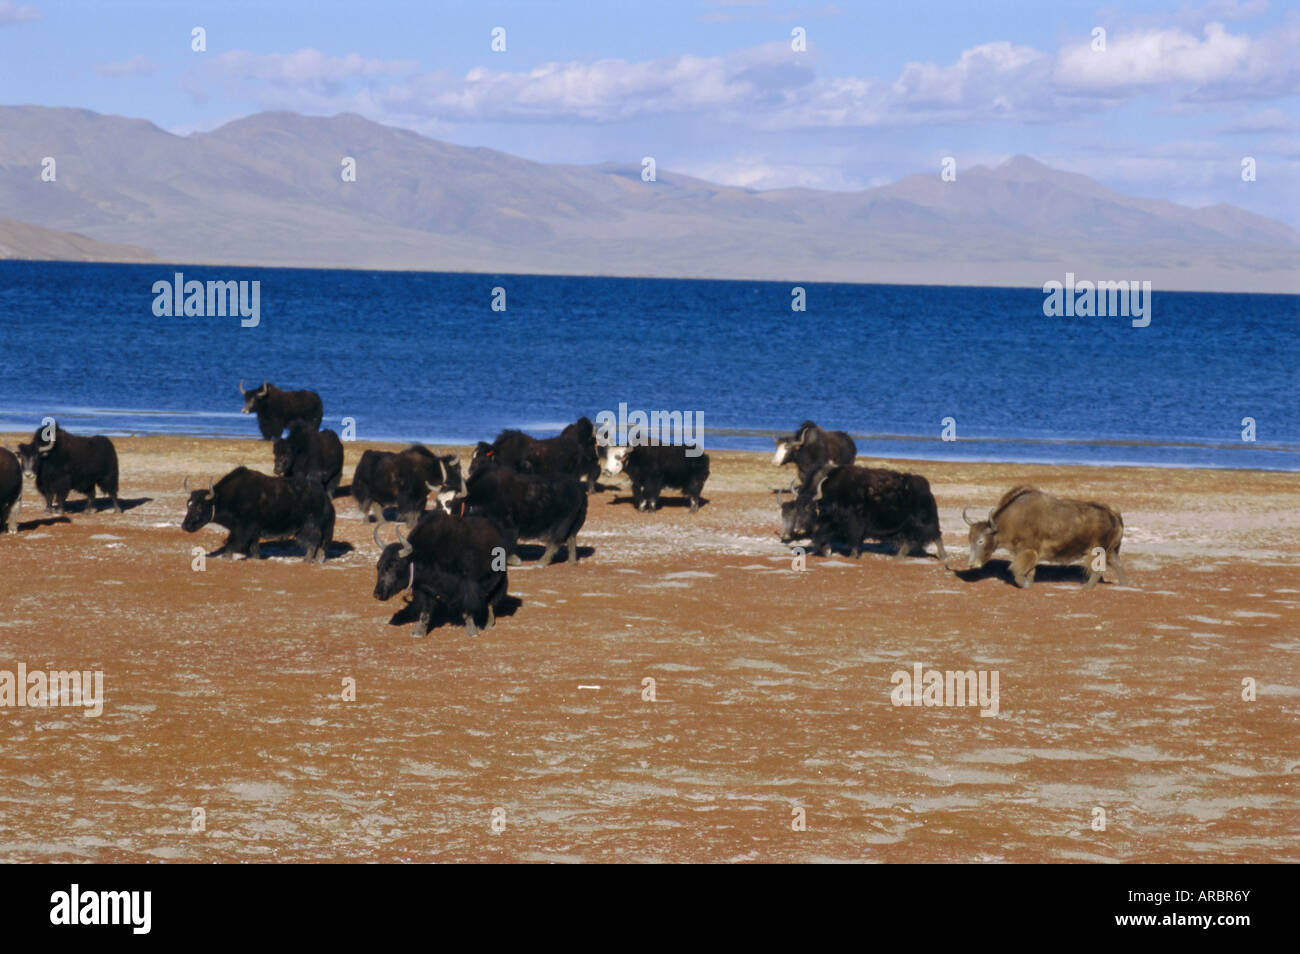 Yak herd on foreshore, sacred lake Manasarovar (Manasarowar), Kailas (Kailash) region, Tibet, China, Asia - Stock Image